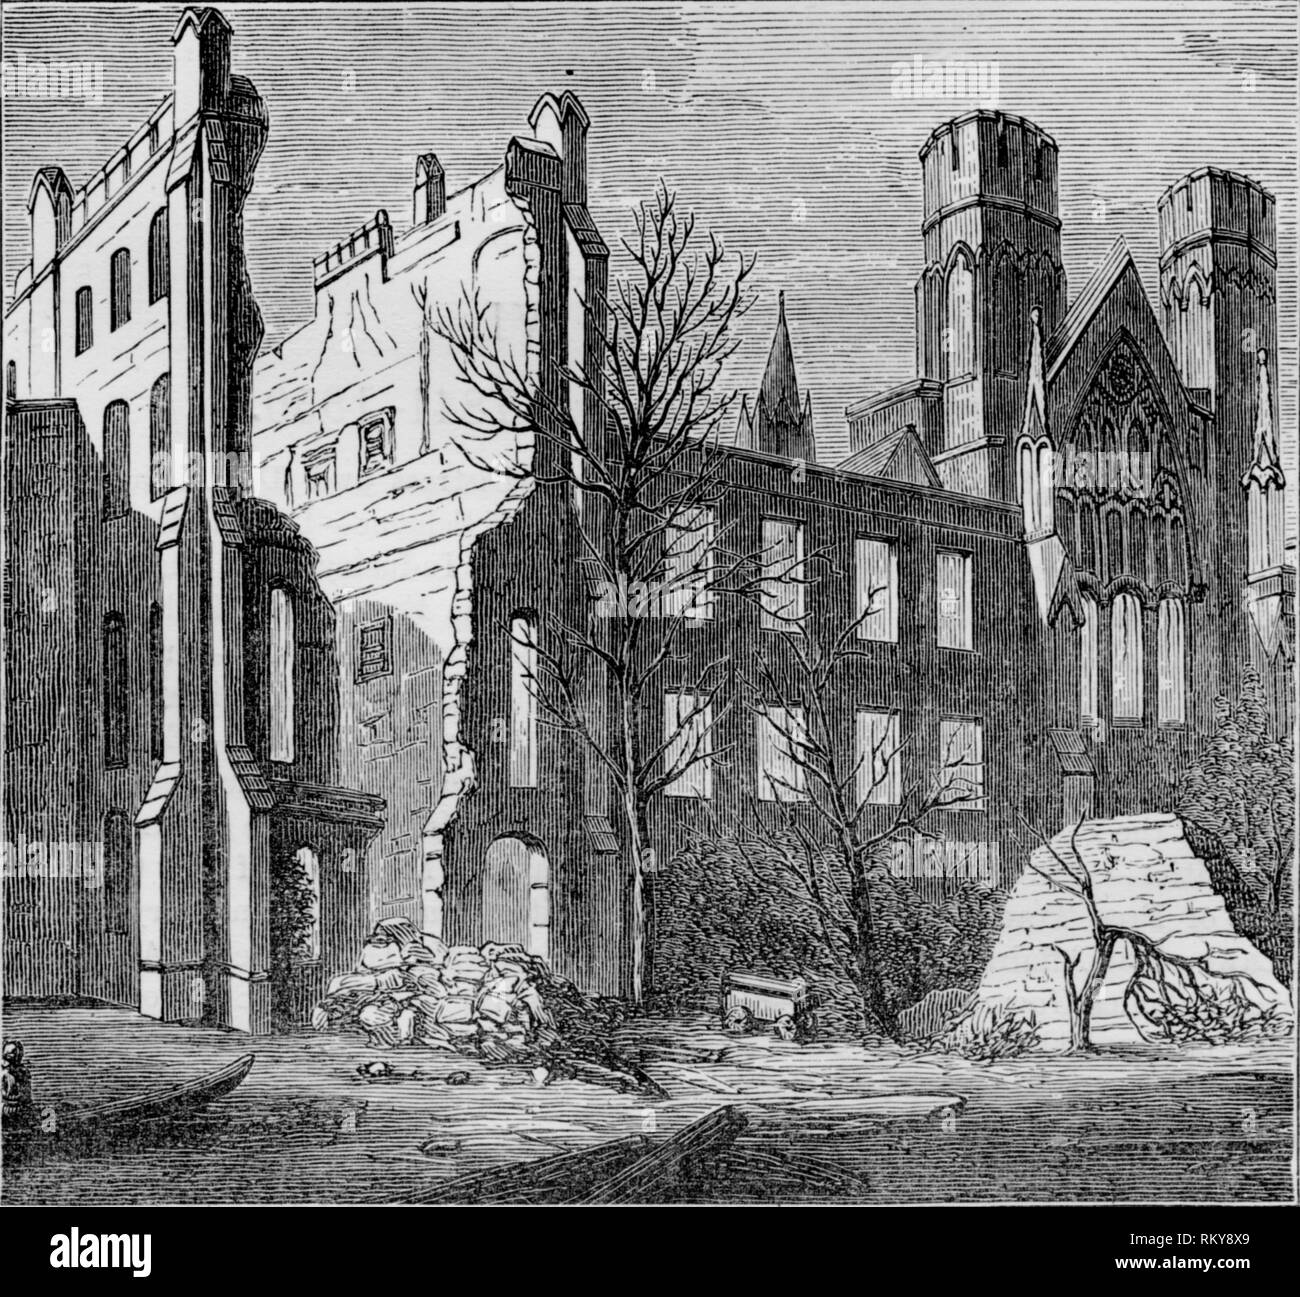 'Ruins of the Houses of Parliament, after the fire in 1834', (c1850s). View of the Palace of Westminster in London after it was destroyed by fire. - Stock Image